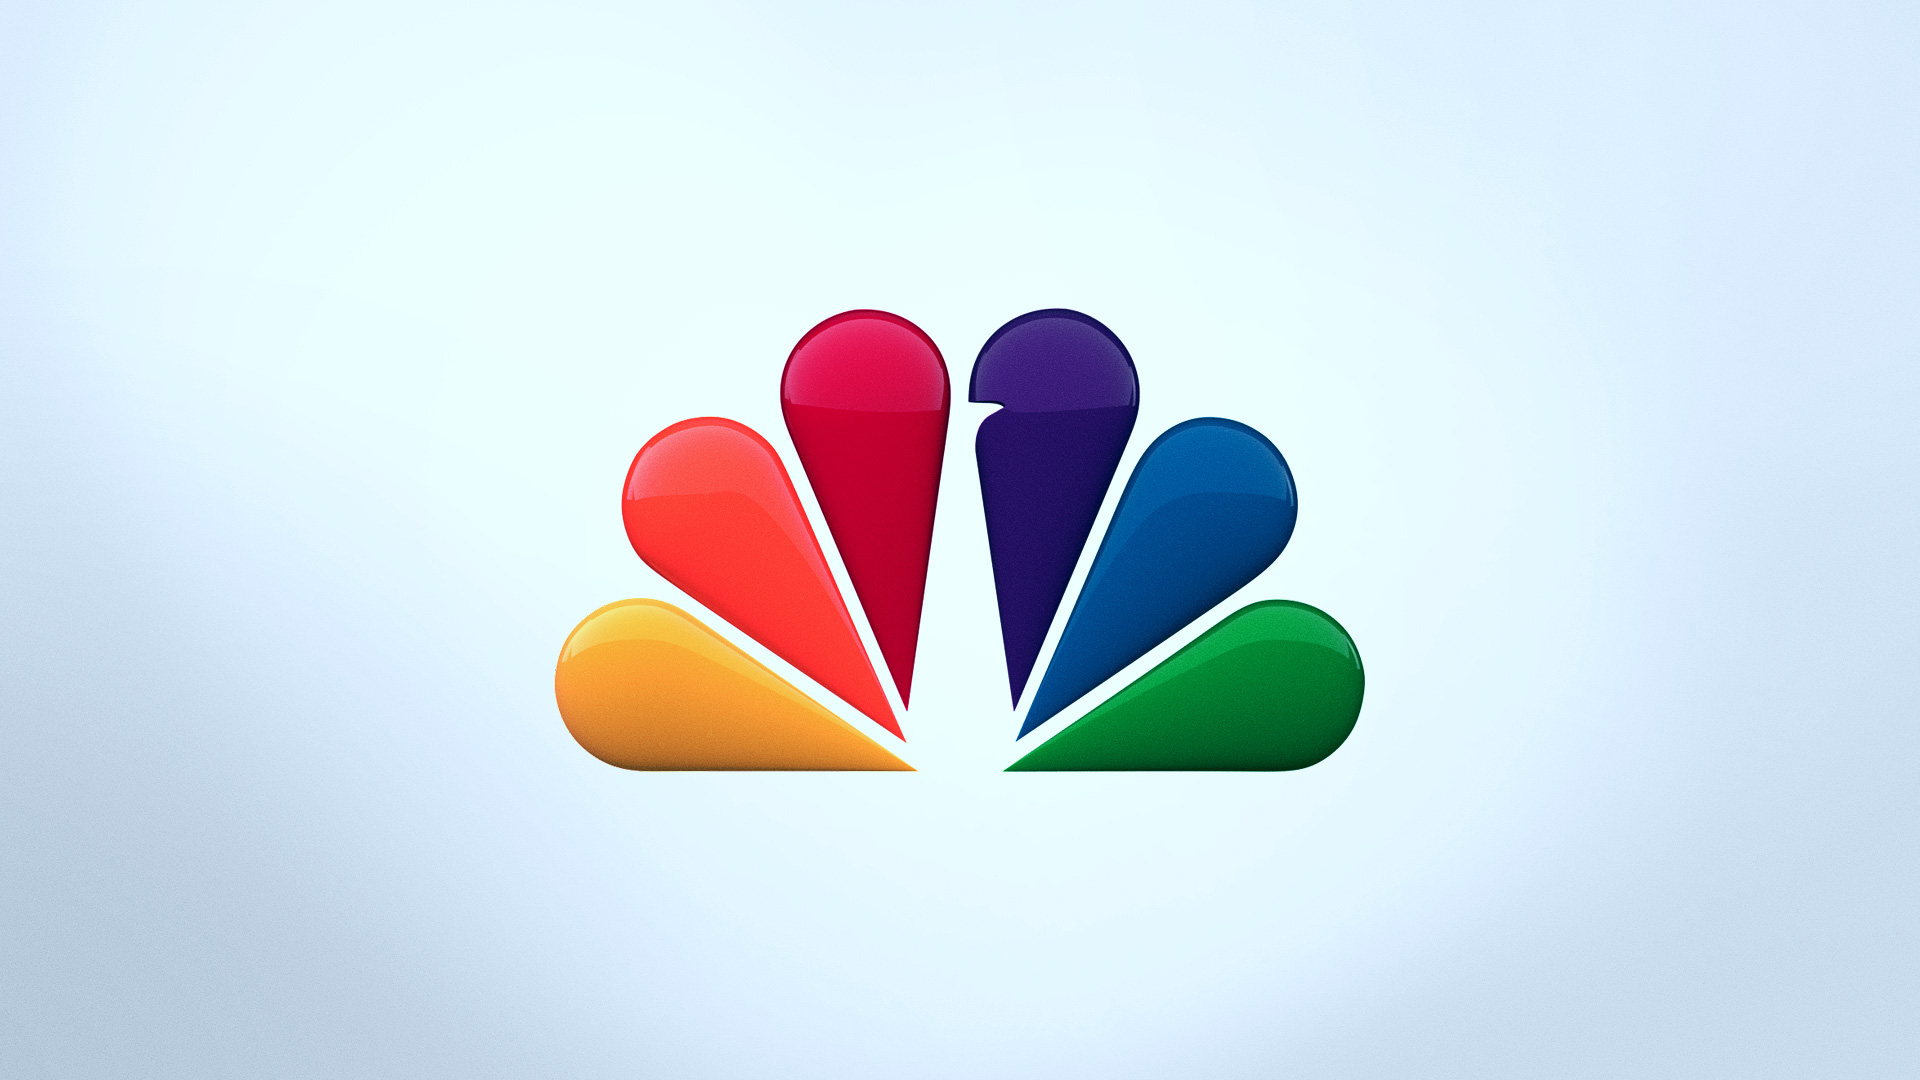 motion title design: nbc hero logo